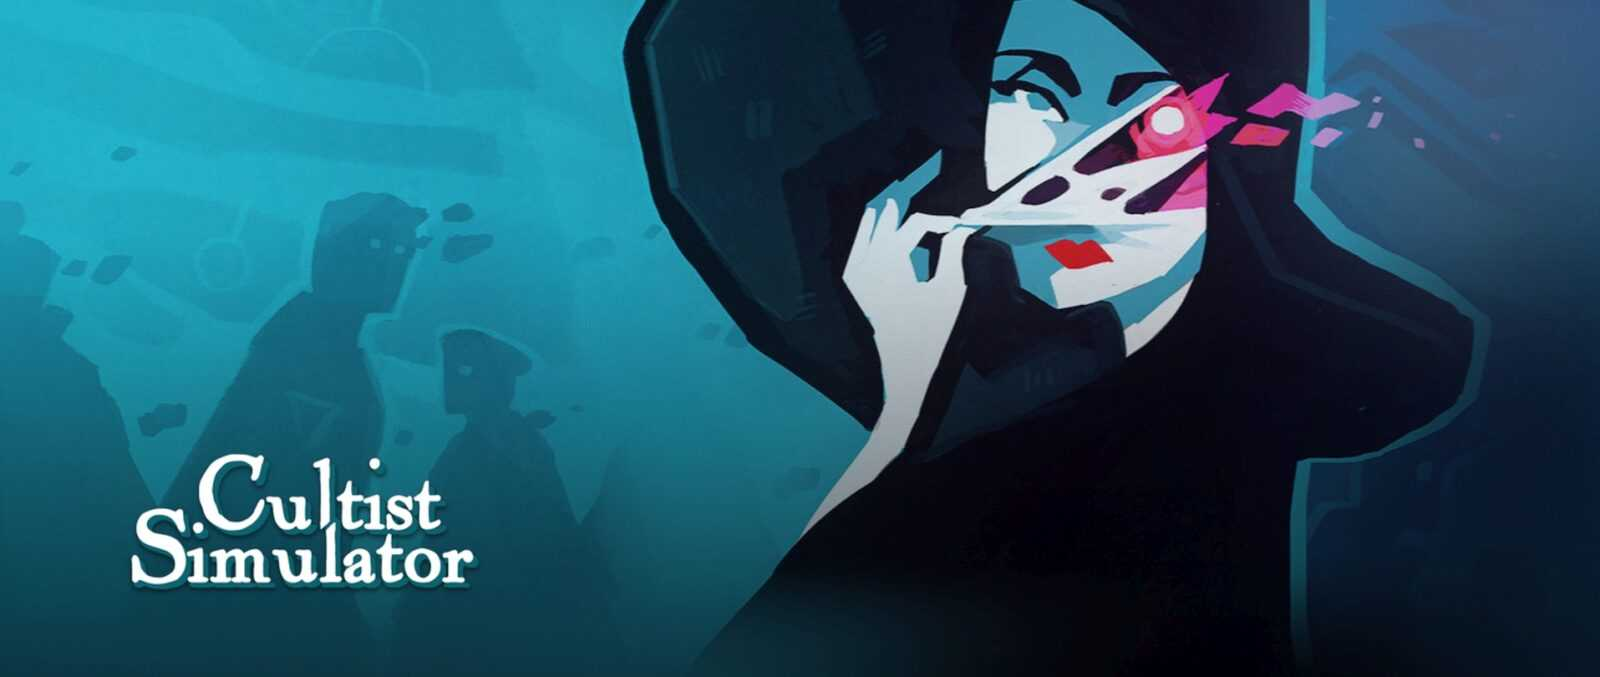 Cultist Simulator: Initiate Edition Launches On Nintendo Switch In February